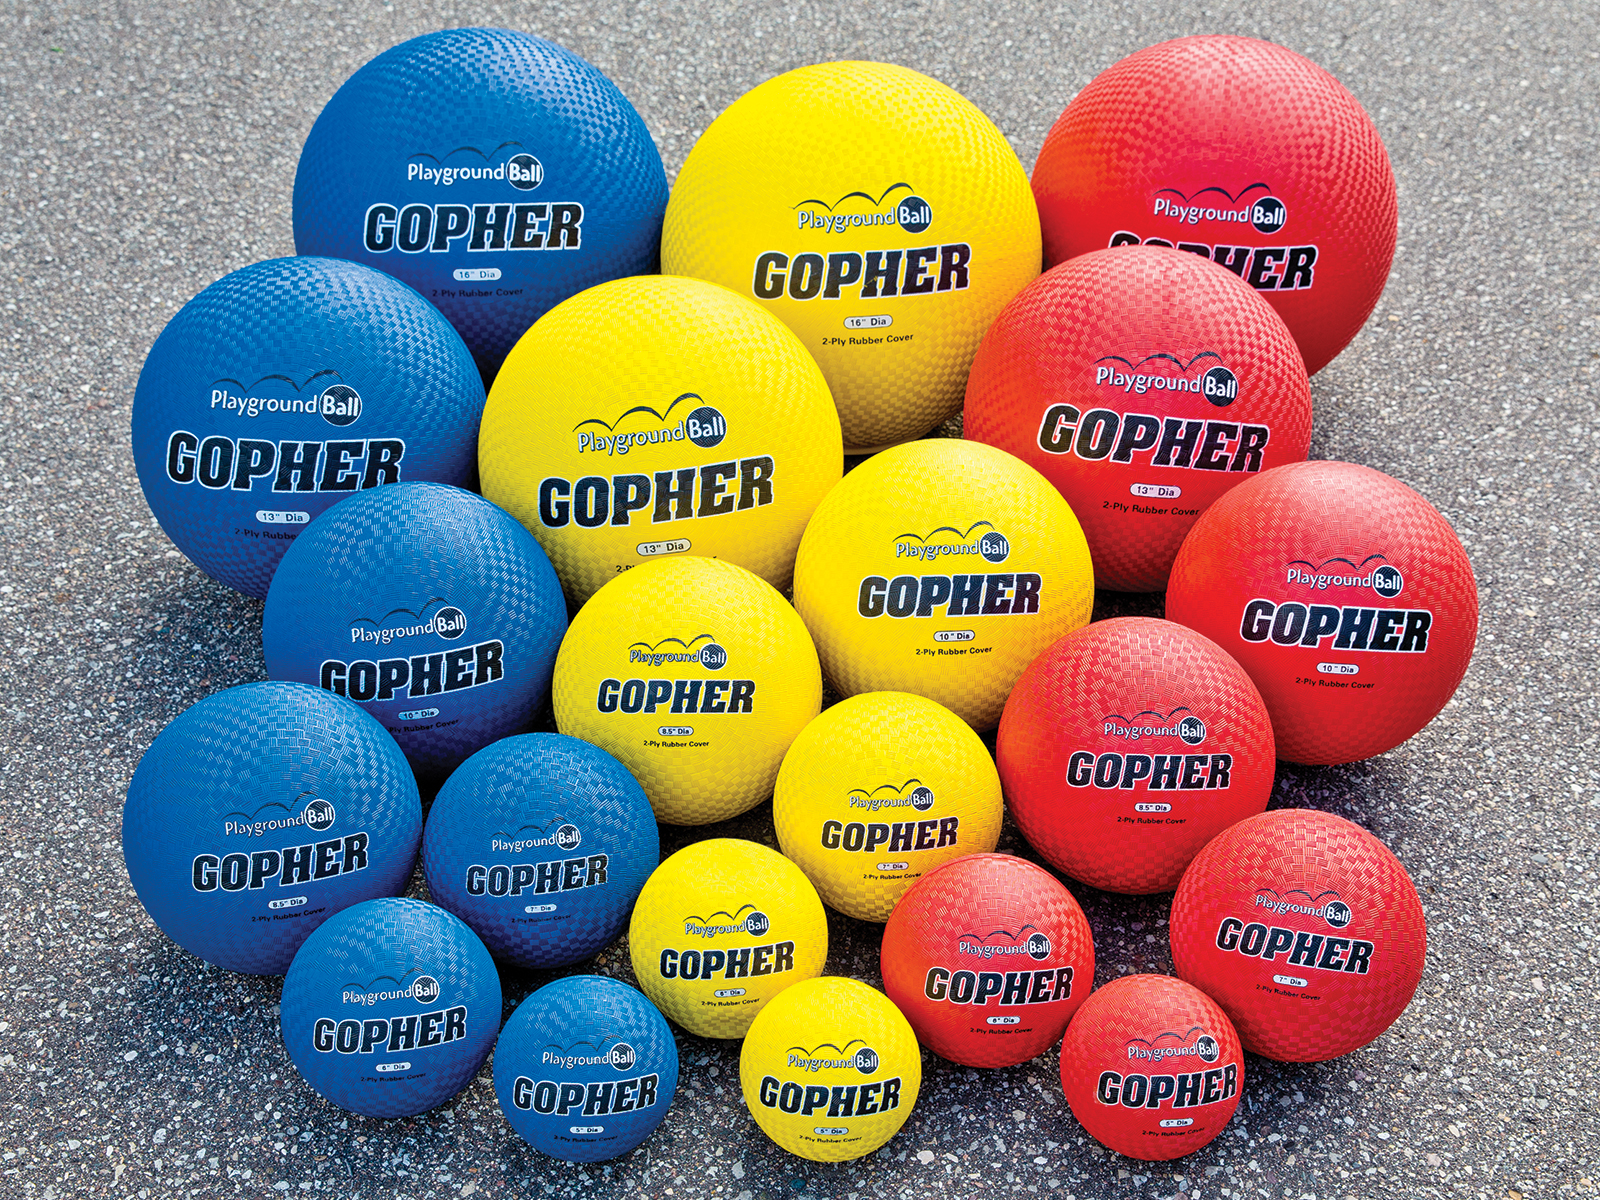 Complete set of gopher playground balls in blue, yellow and red